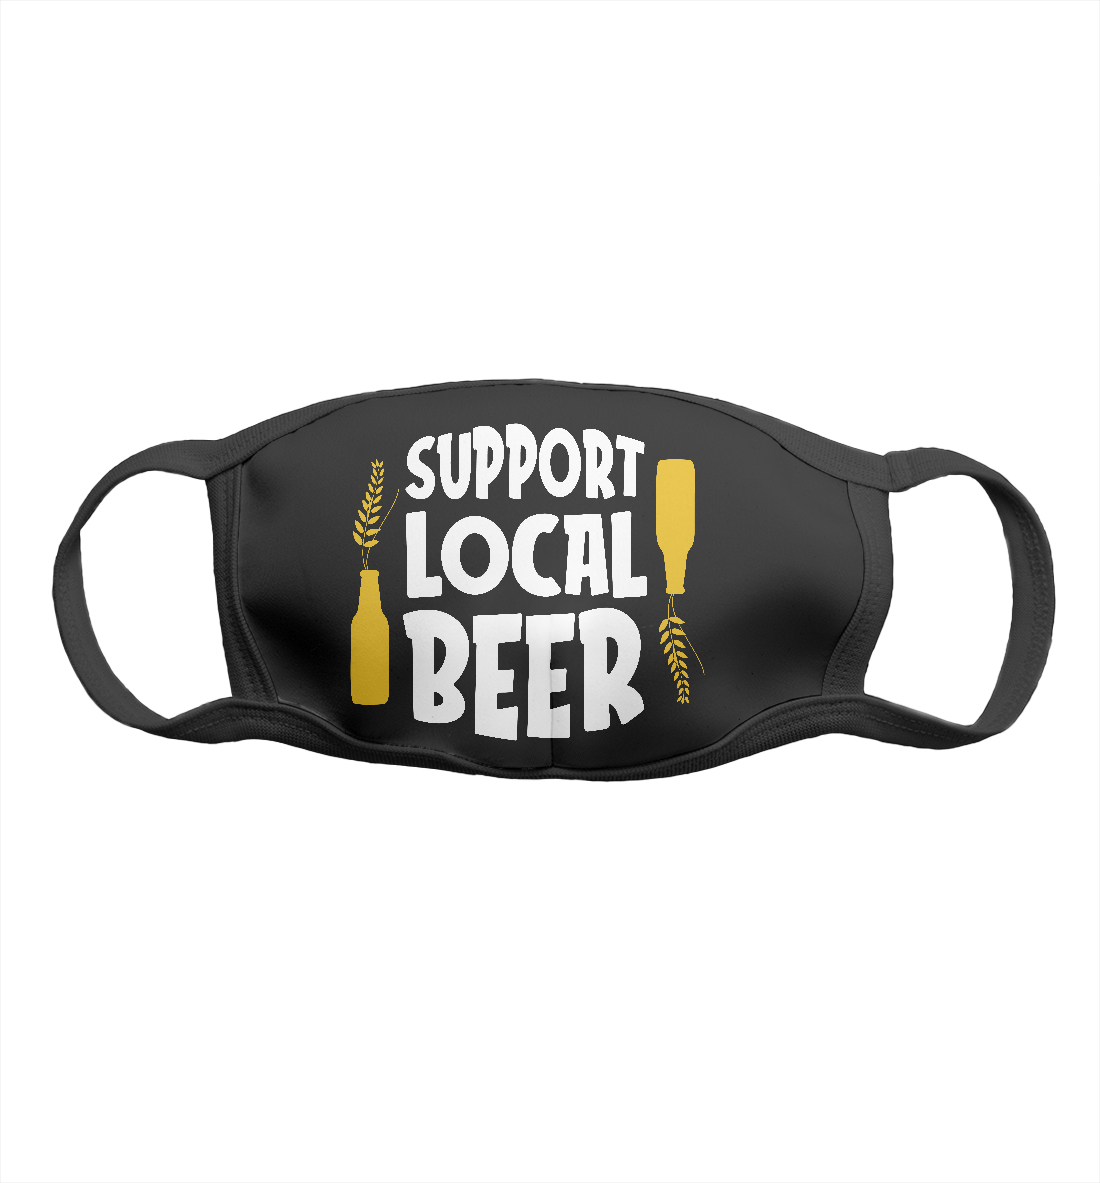 Support local beer support local beer